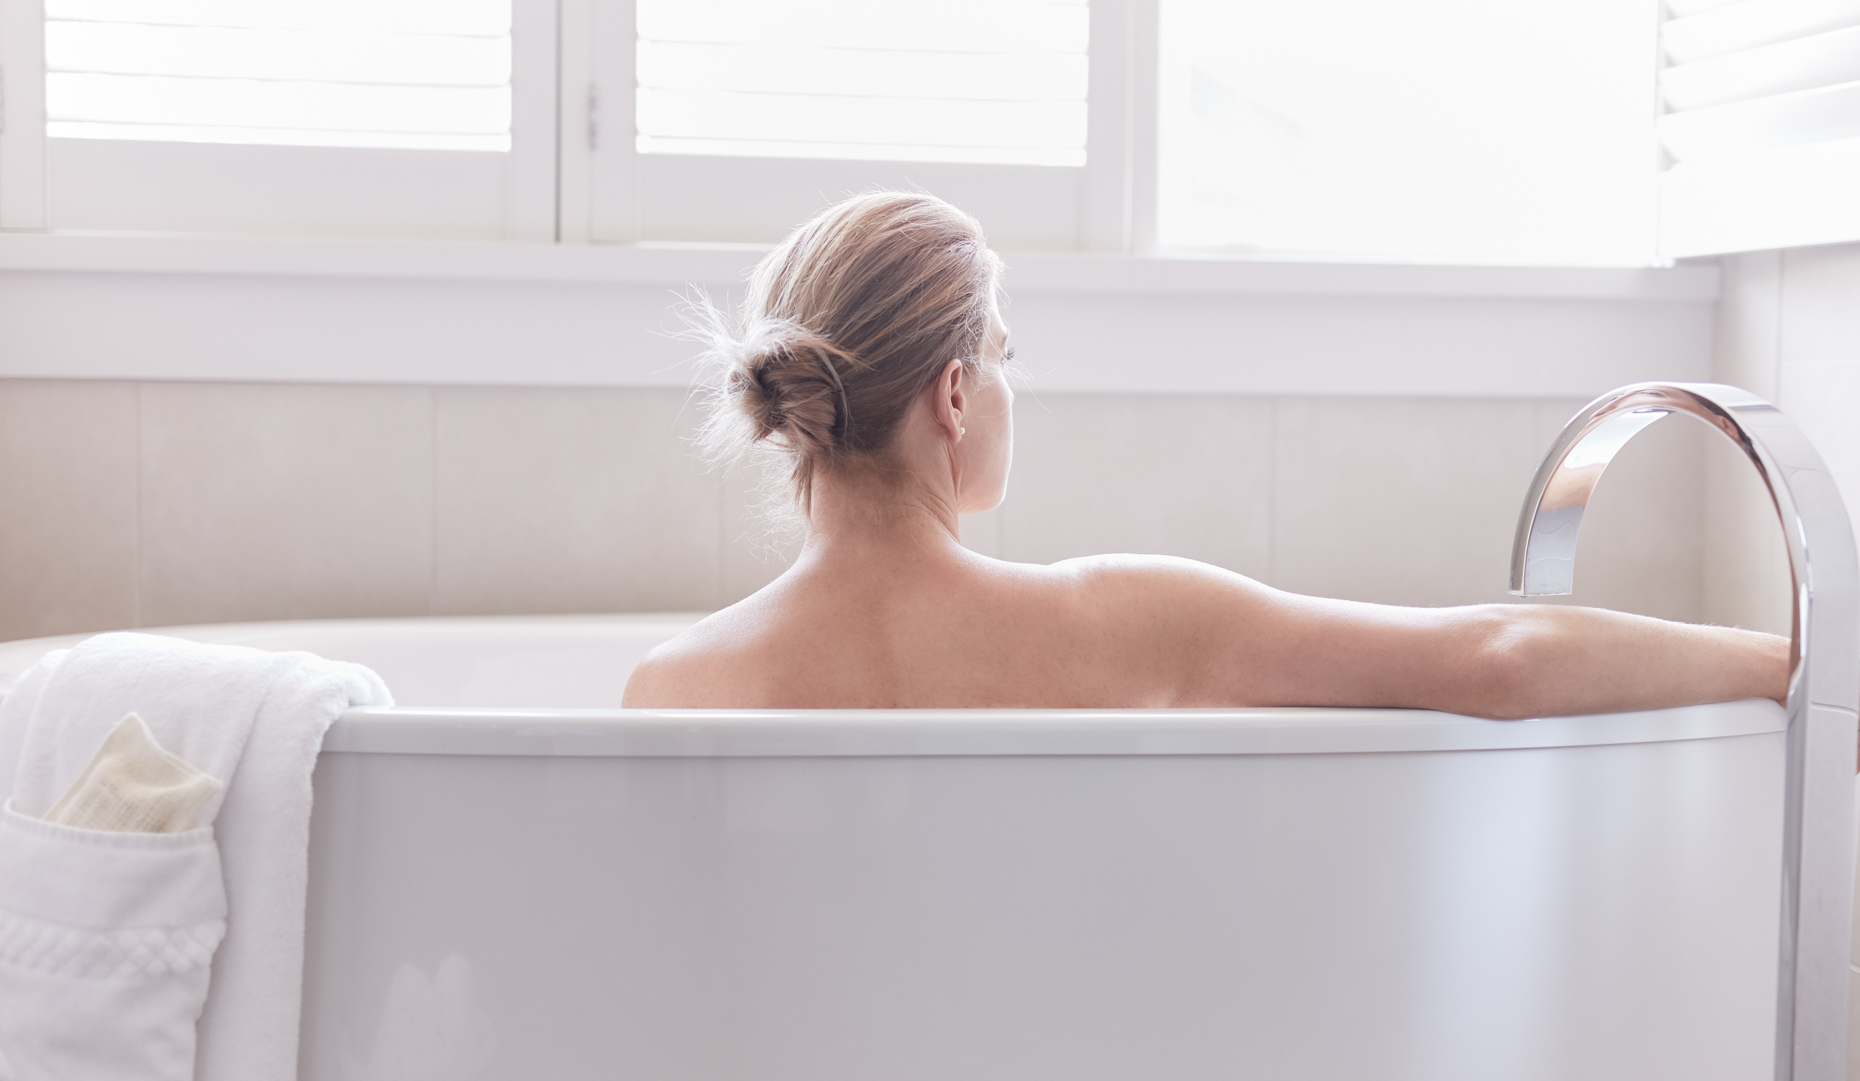 Woman from behind sitting in white bath tub with bare arm on edge of tub glancing out window San Francisco lifestyle photographer